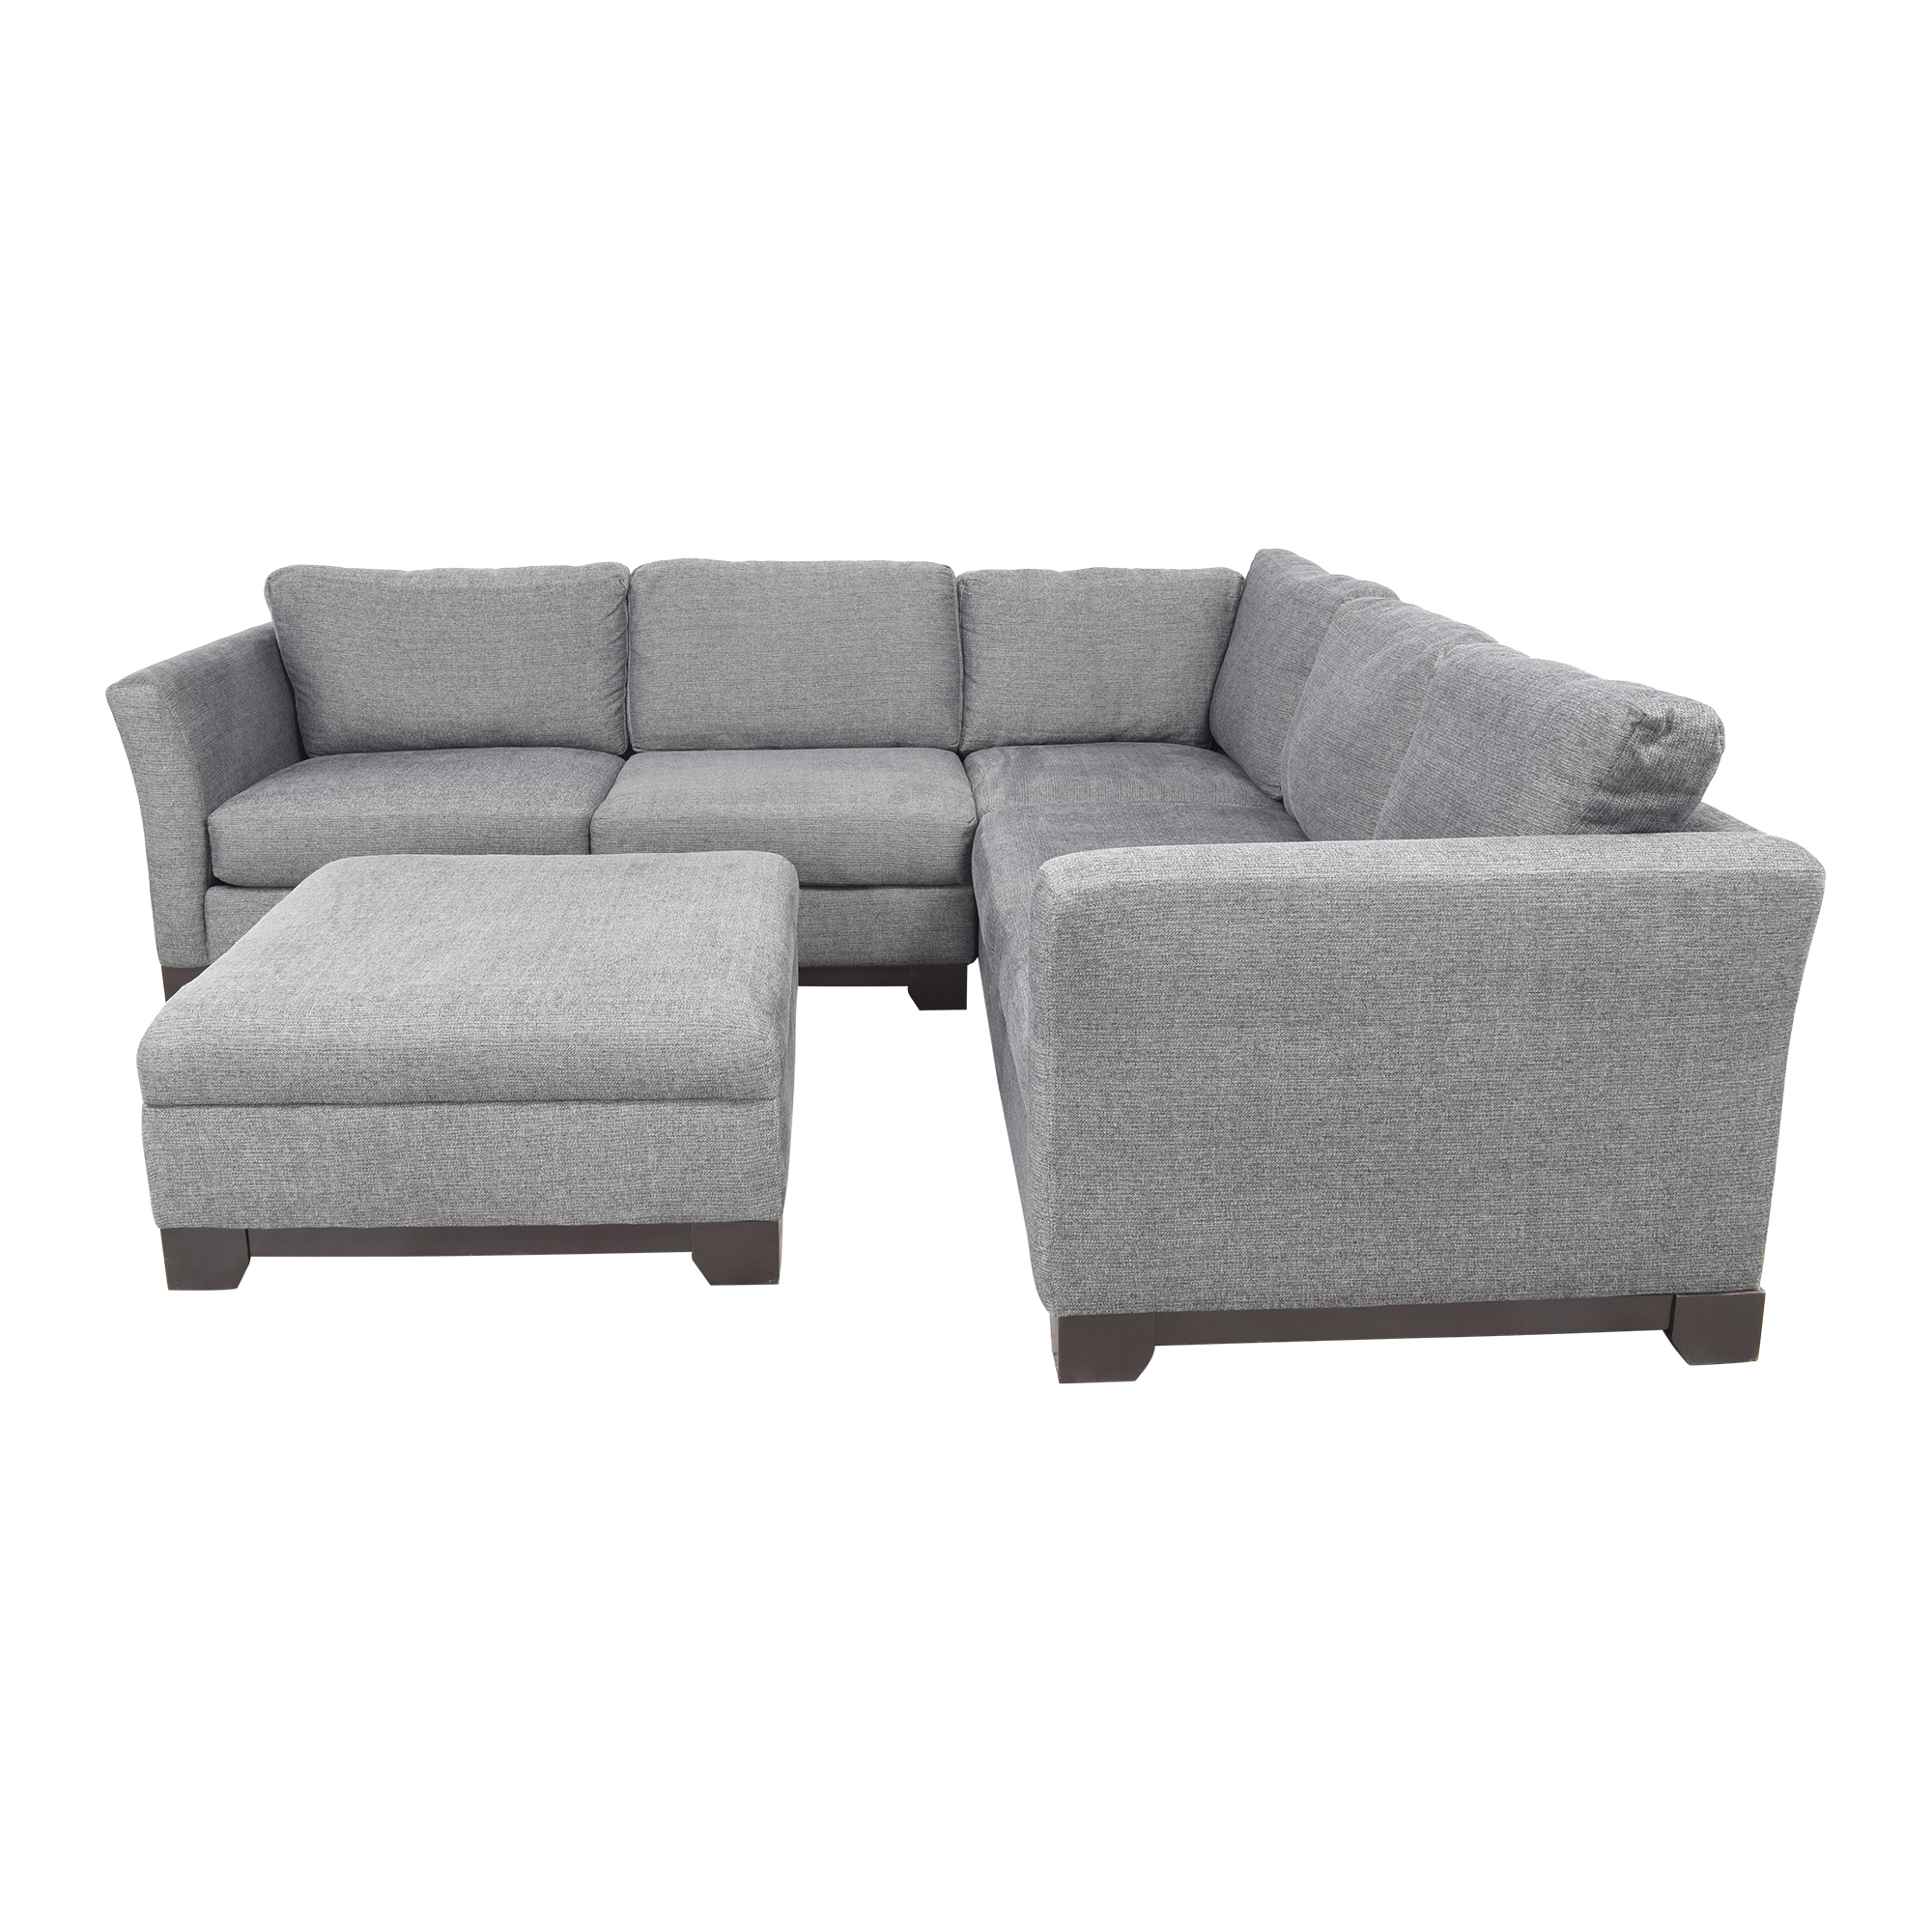 Jonathan Louis Jonathan Louis Elliot II Apartment Sectional Sofa with Storage Ottoman nyc